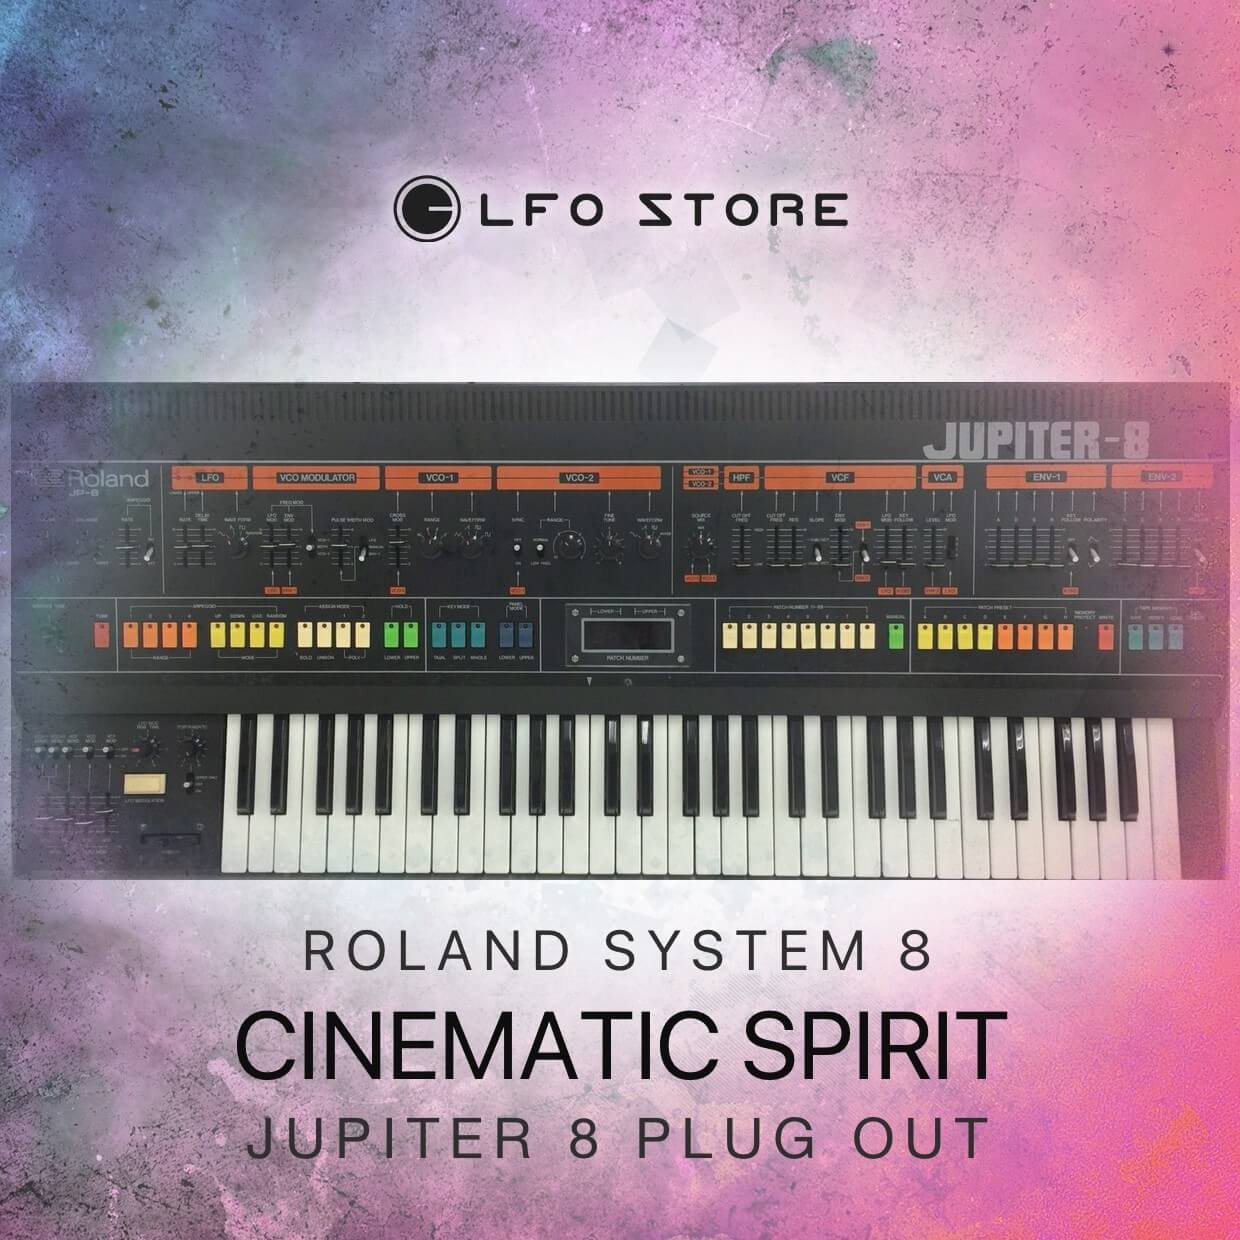 LFO Store launches Cinematic Spirit soundset for Roland Jupiter-8 Plugout